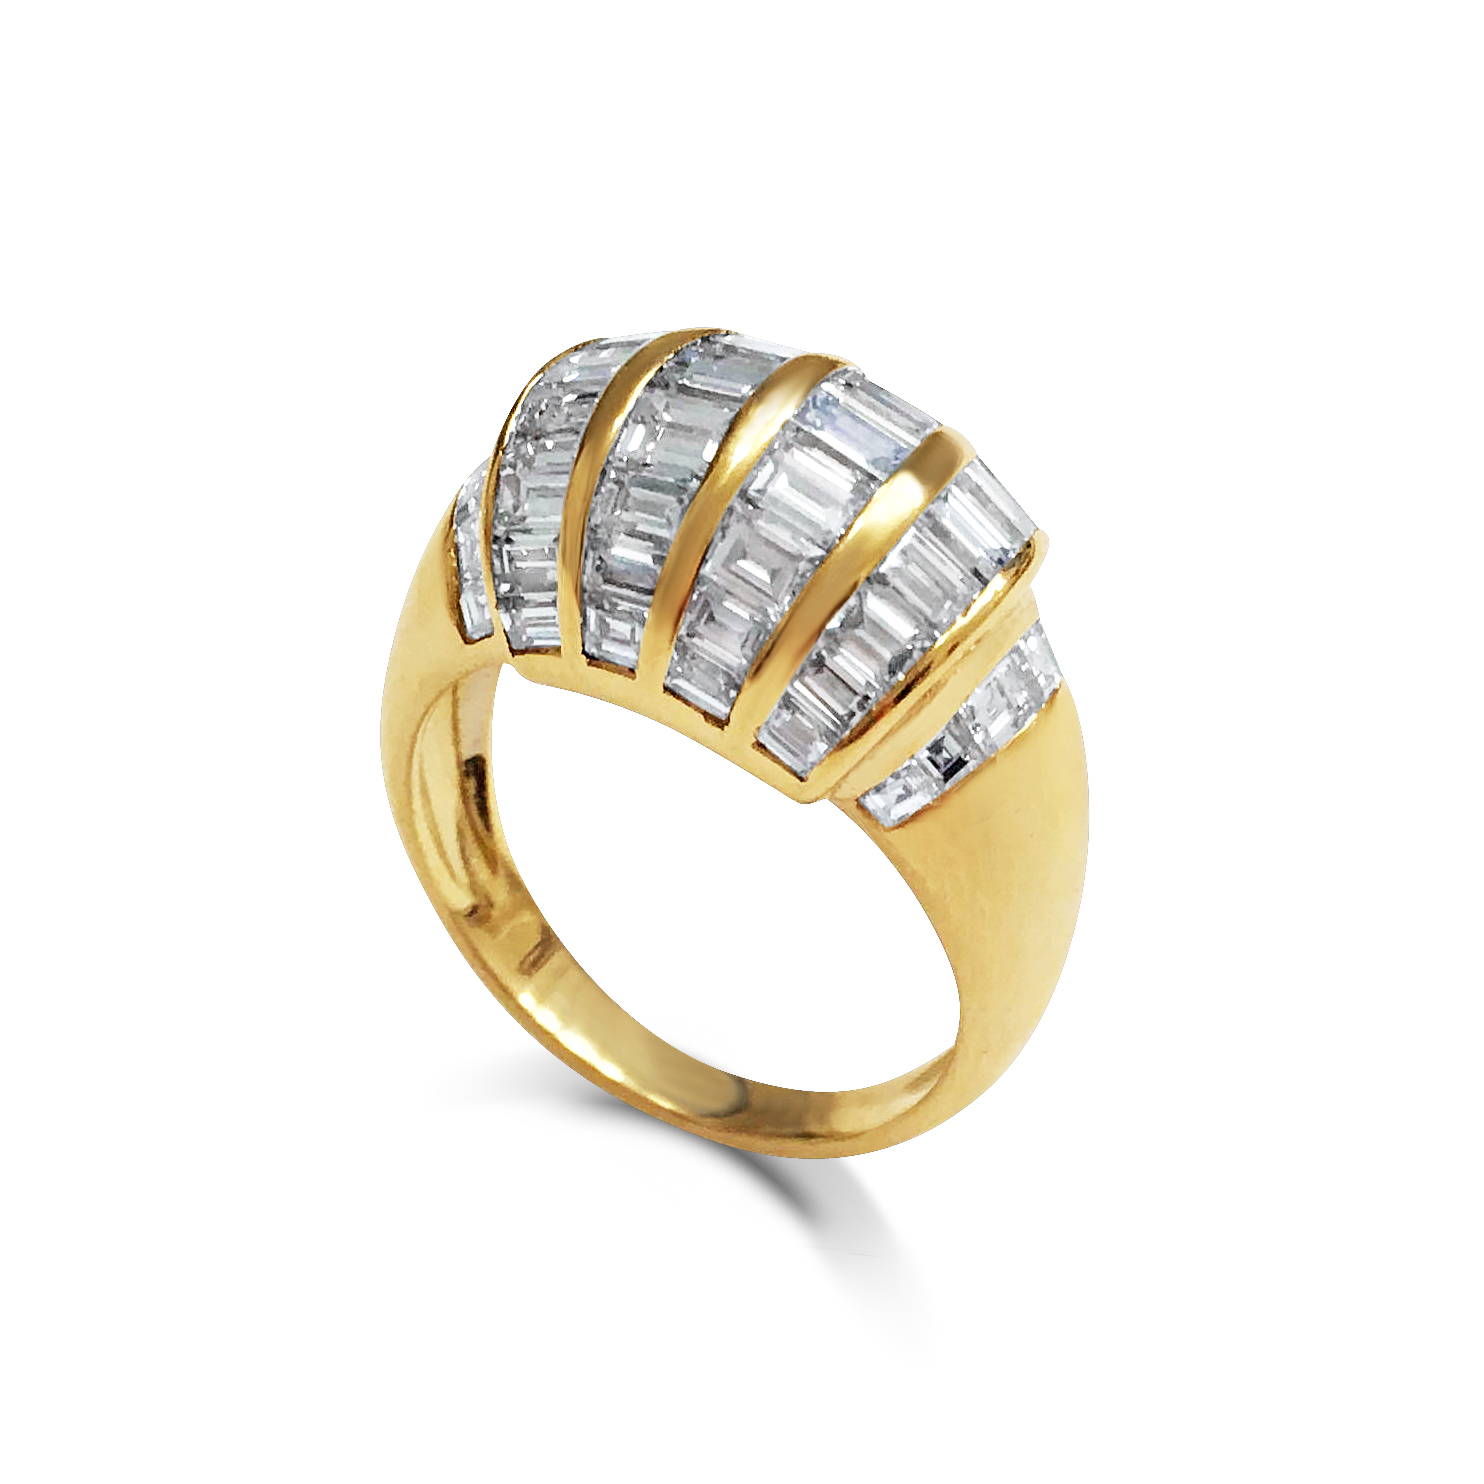 Vintage-square-and baguette-cut-diamond-domed-cocktail-ring-SN169-2.jpg